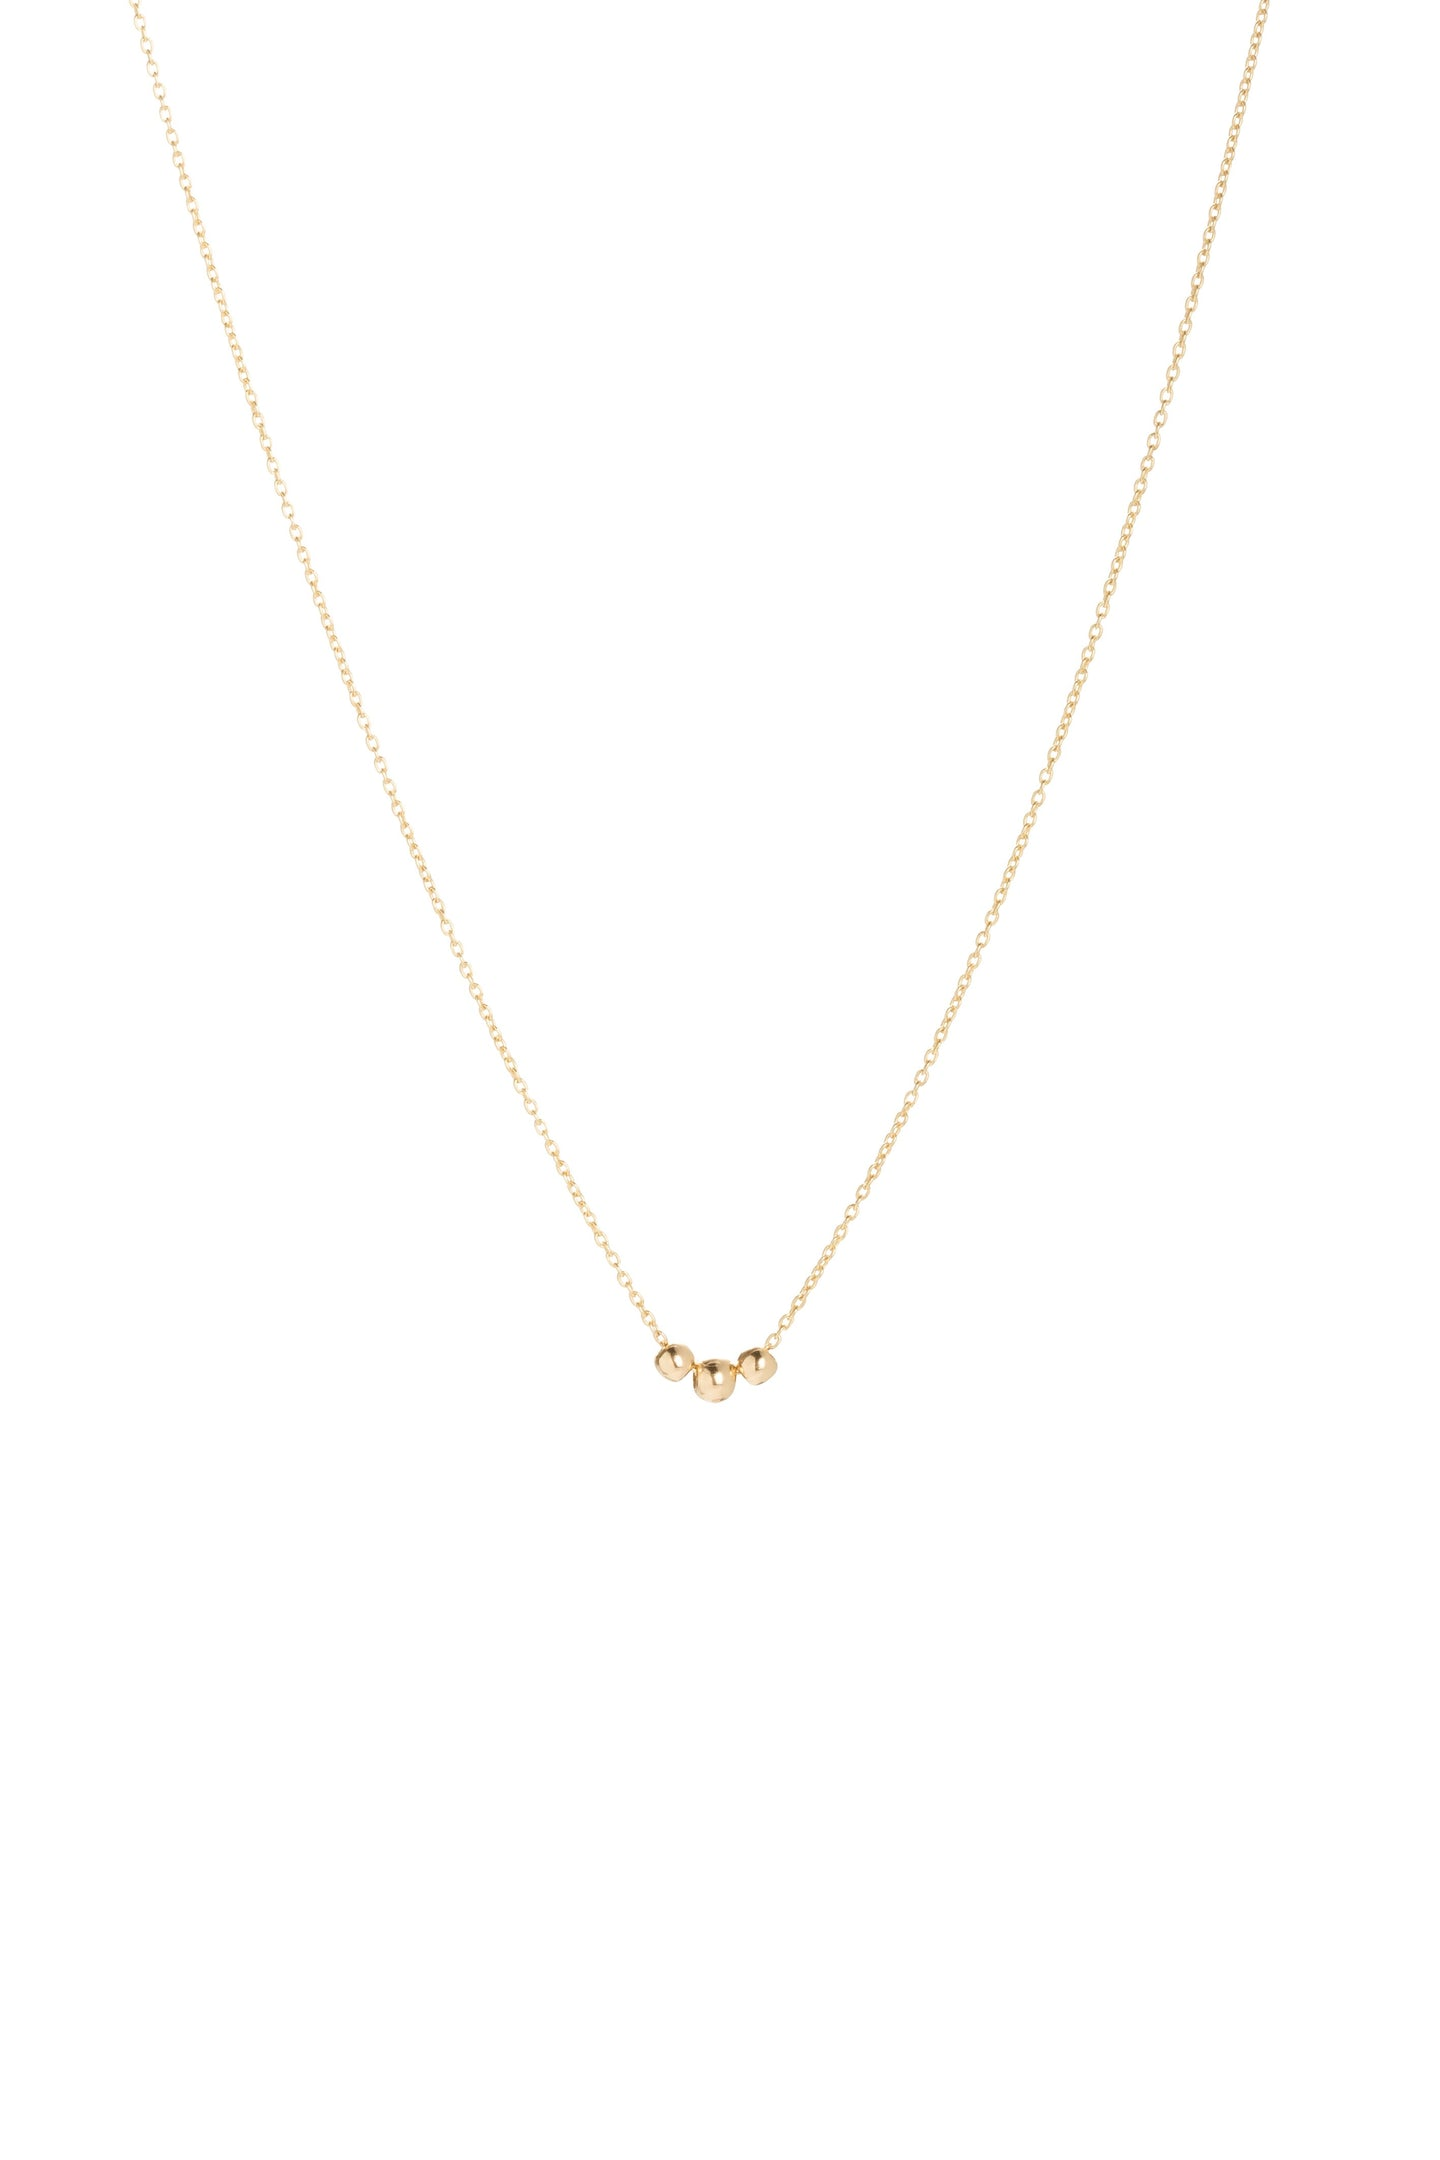 Aynur Abbott - N#02 Delicate triple ball gold necklace